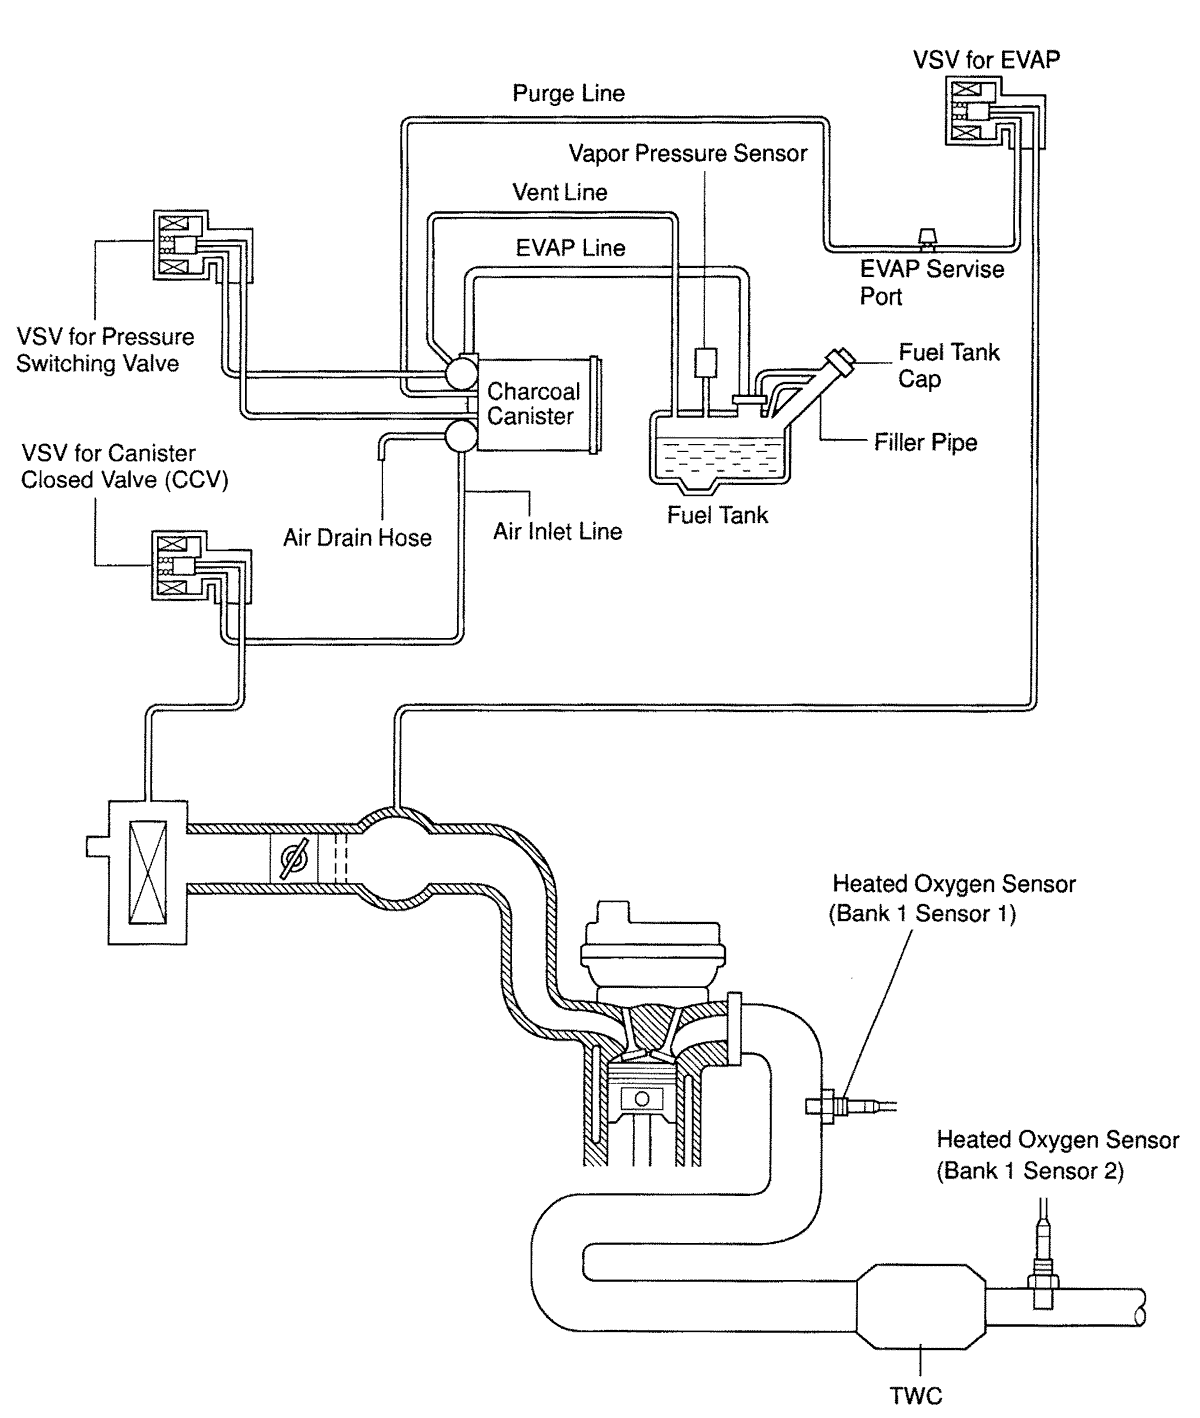 toyota celica engine diagram toyota archives page 2 of 23 freeautomechanic advice 2003 toyota celica engine diagram toyota archives page 2 of 23